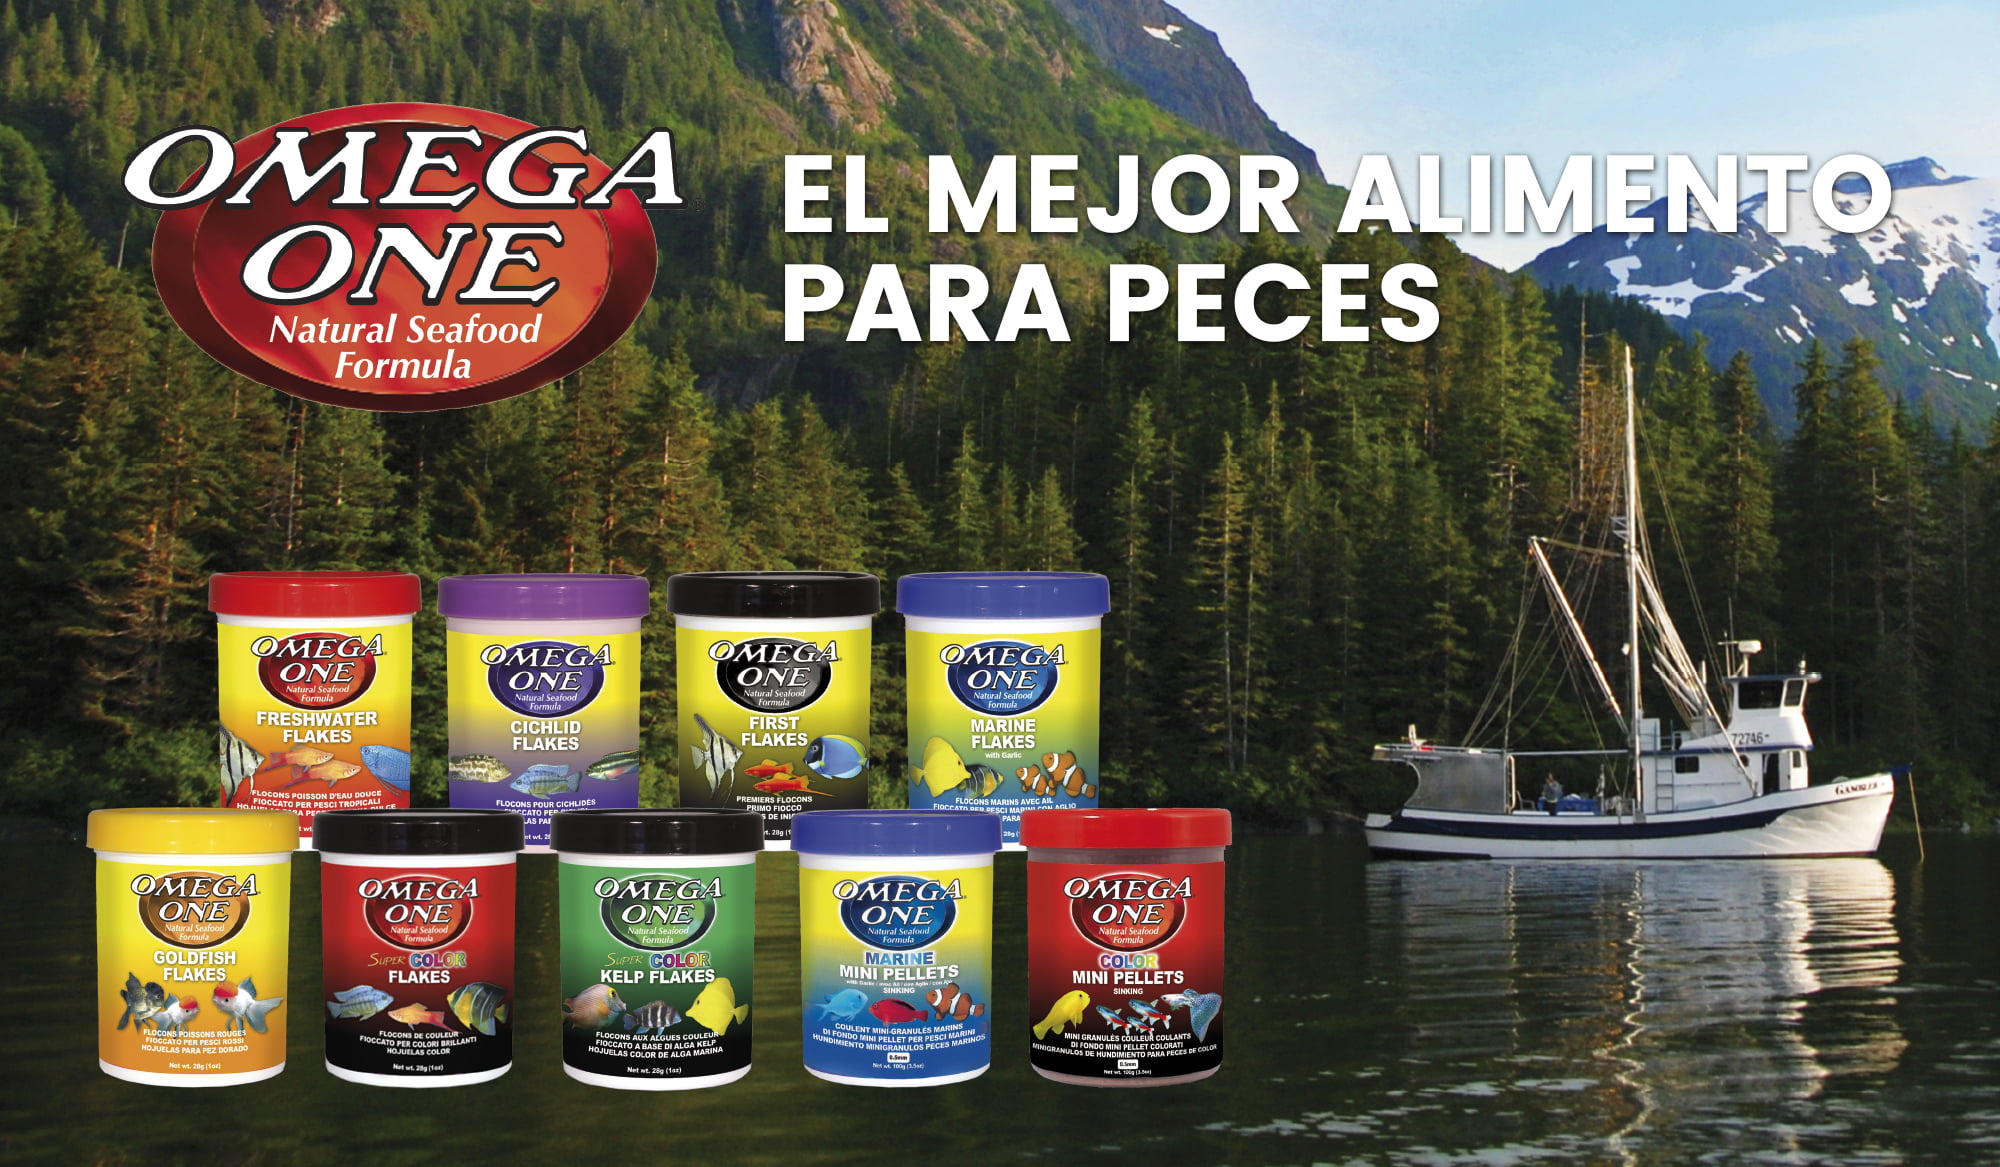 Omega One: Alimento natural premium para peces